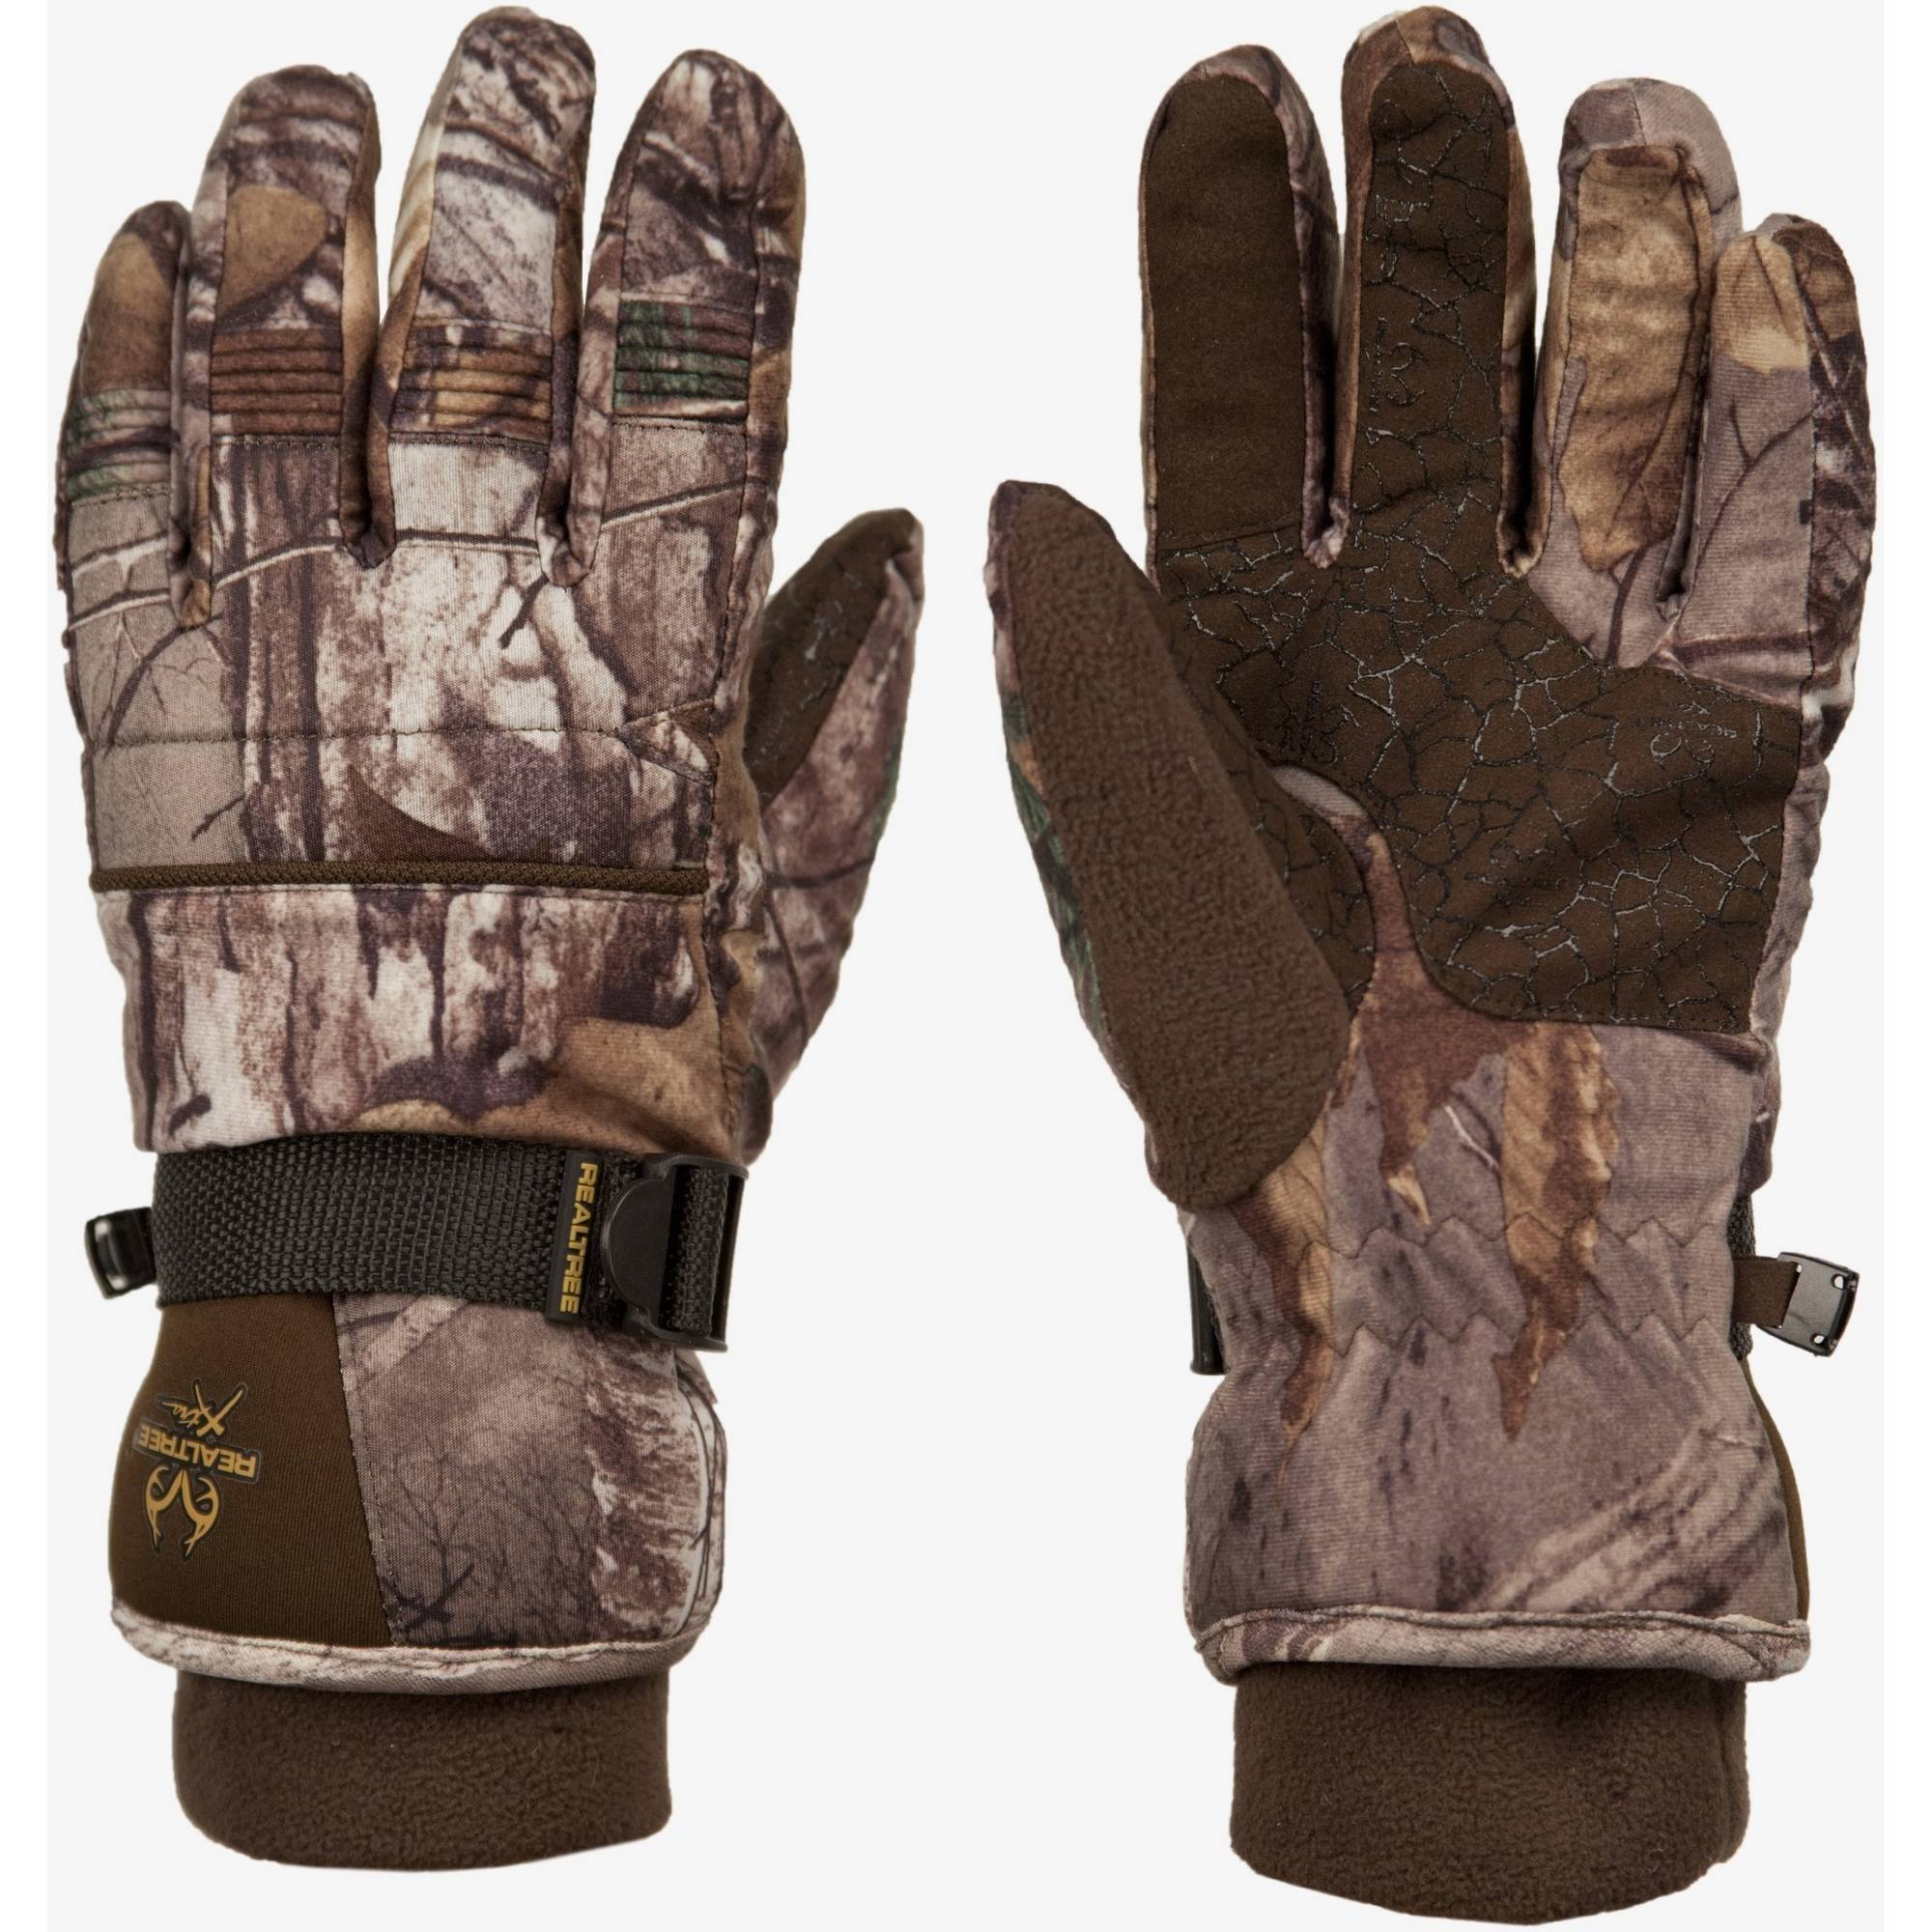 Realtree Men's Heavyweight Gloves